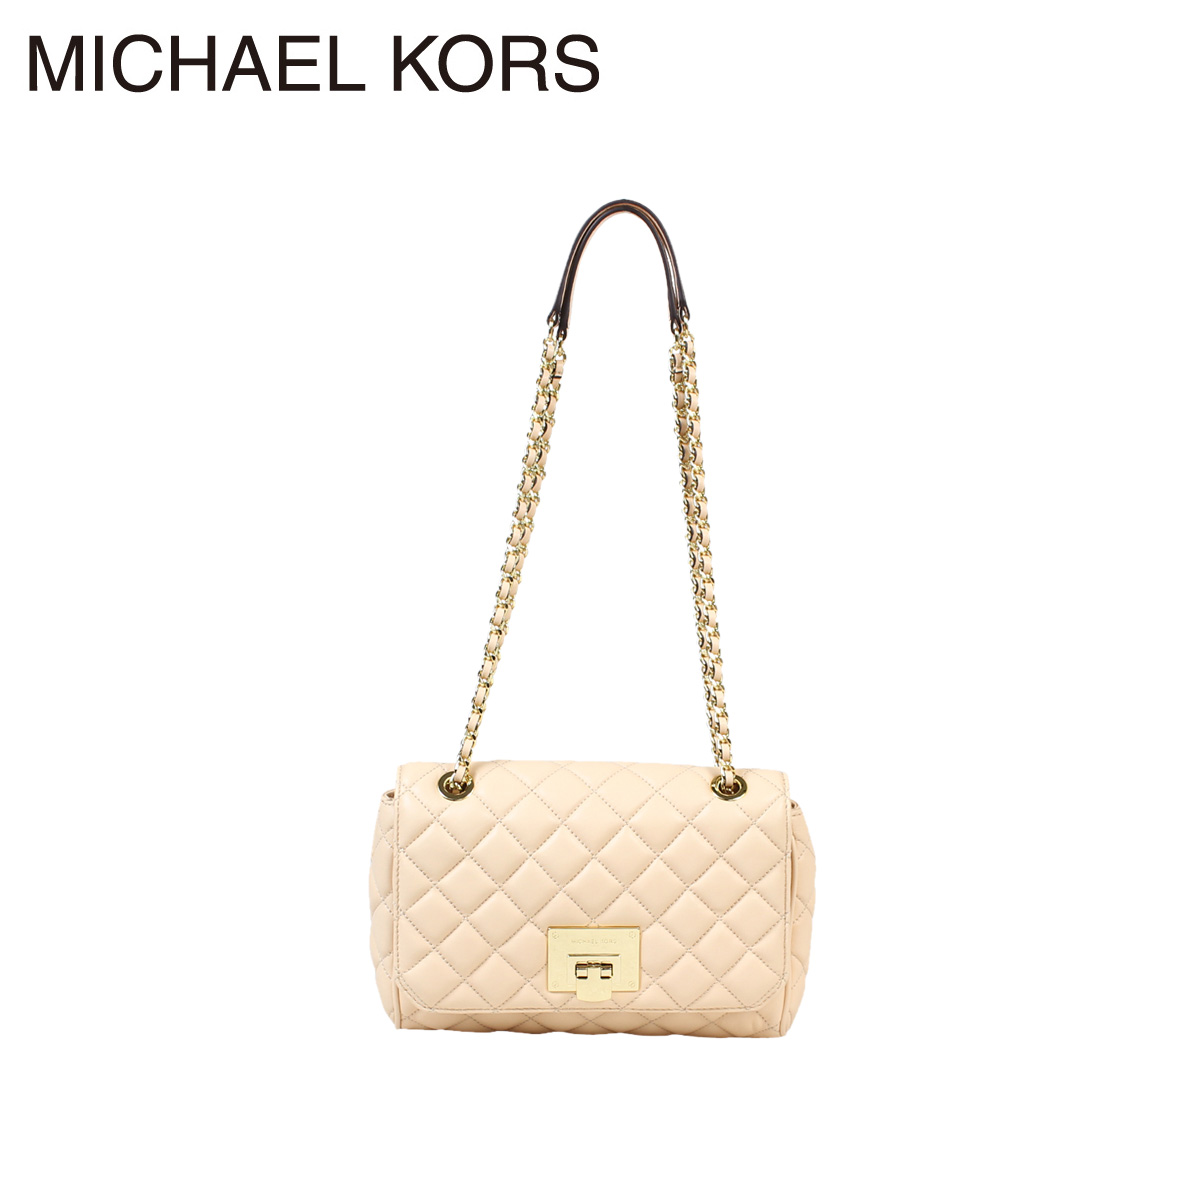 Michael kors tote bags philippines - Michael Kors Michael Kors Bag Shoulder Bag 35t6gvaf1l Nude Women